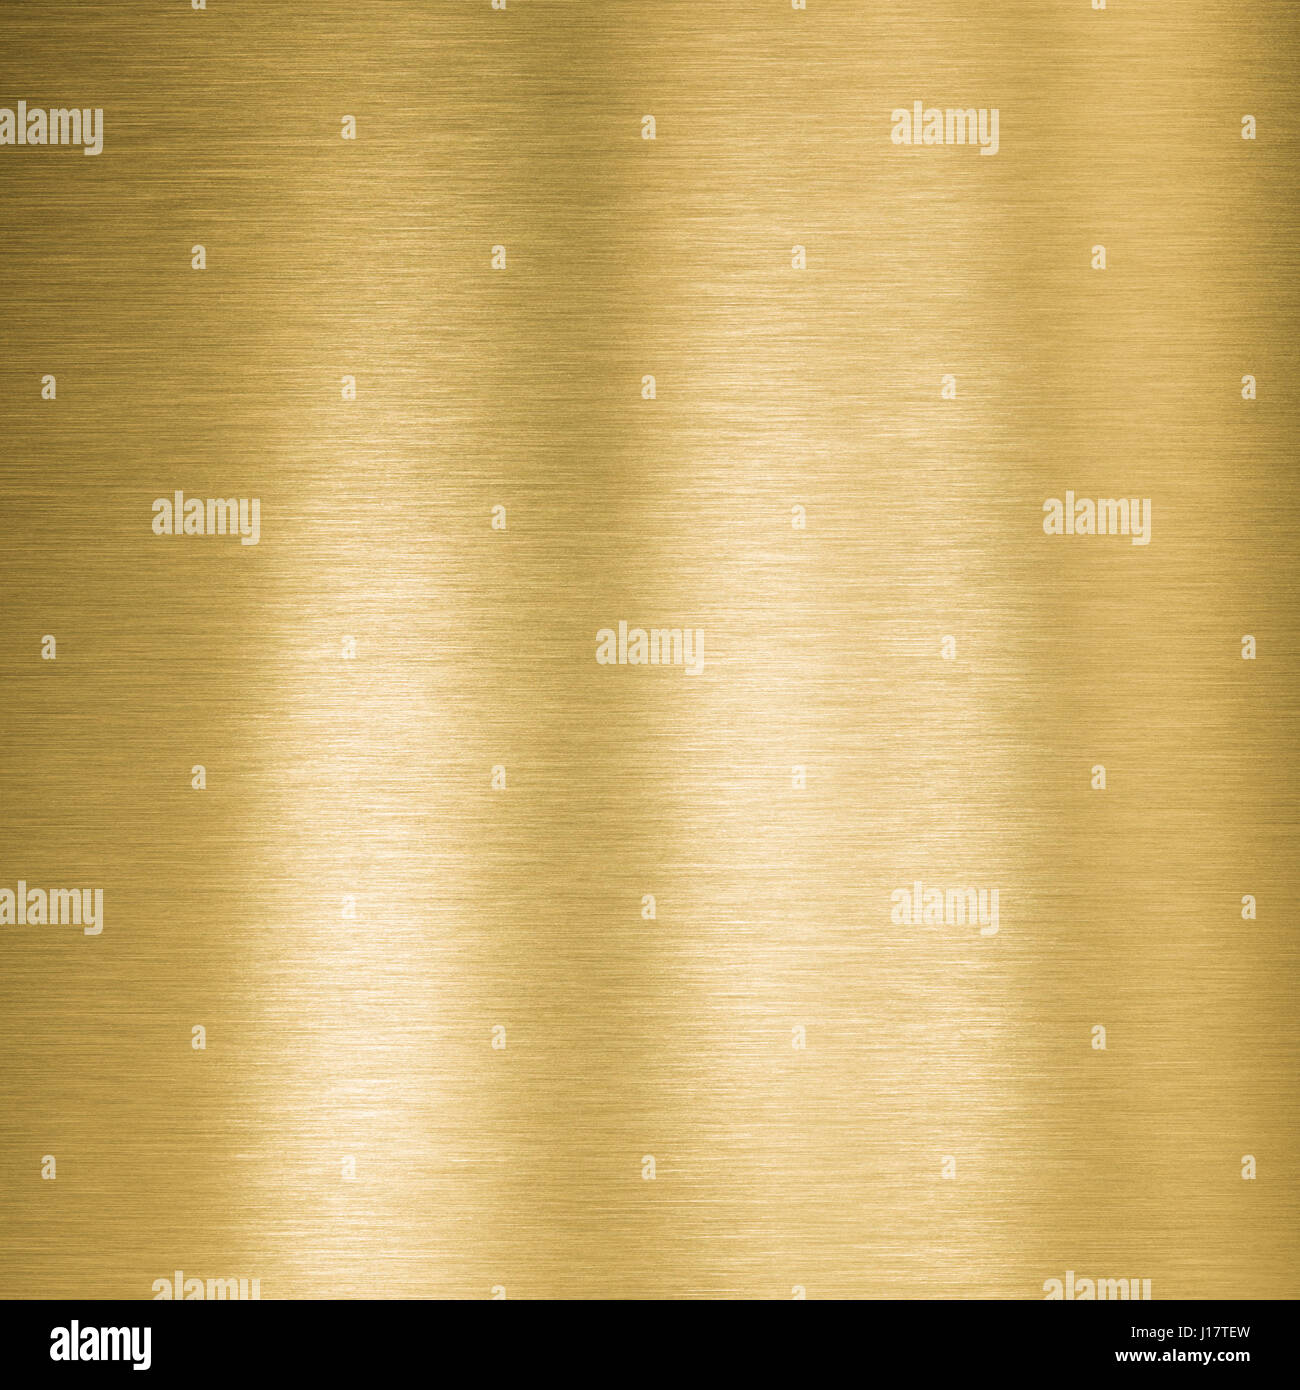 square gold metal plate - Stock Image